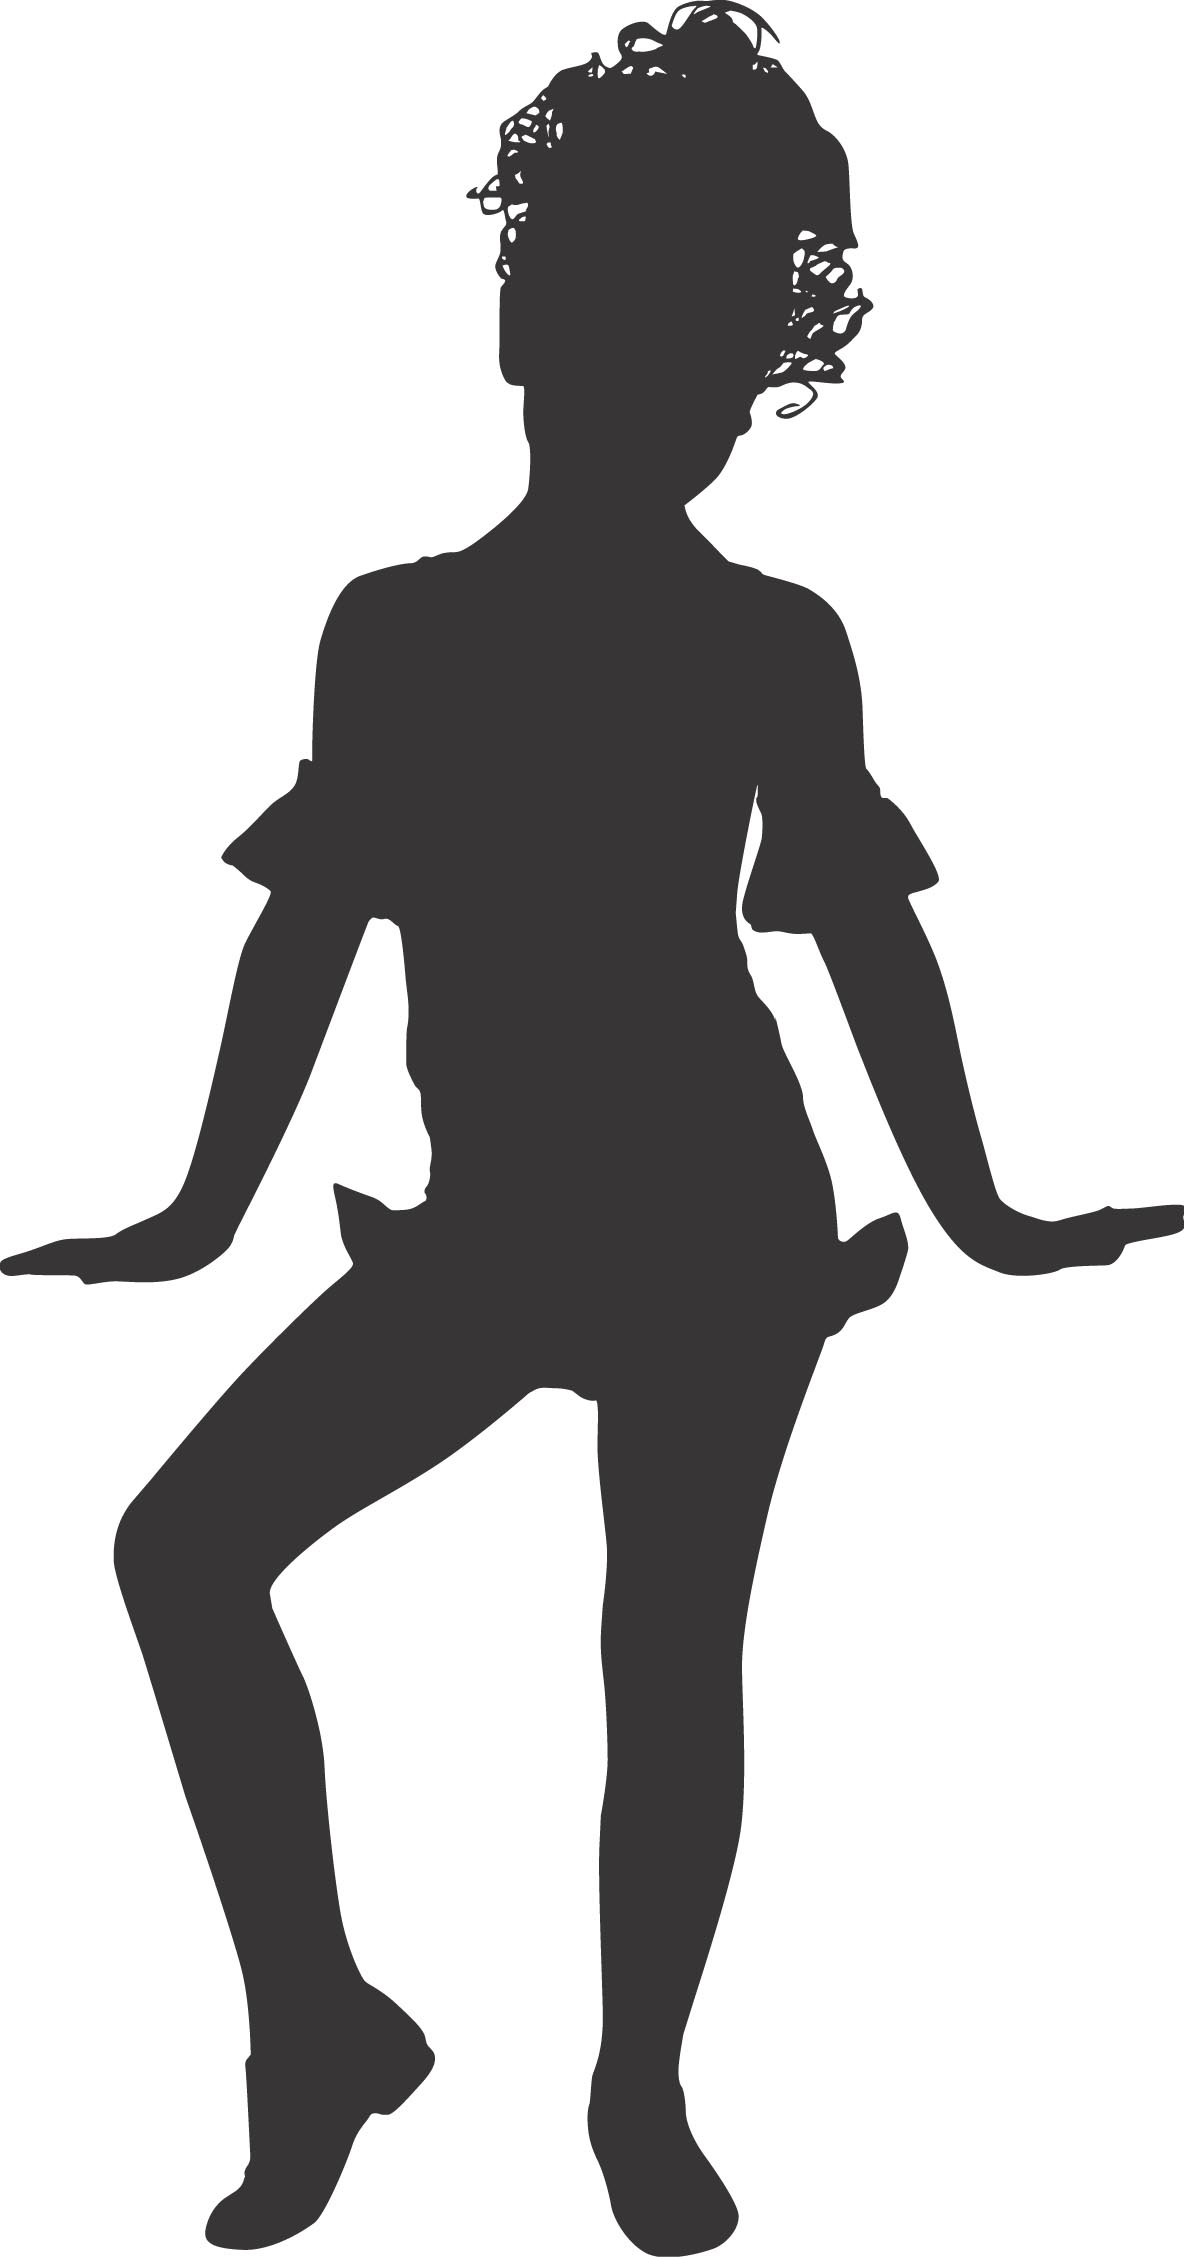 Tap shoes tap dance clip art is a fun rhythmic style